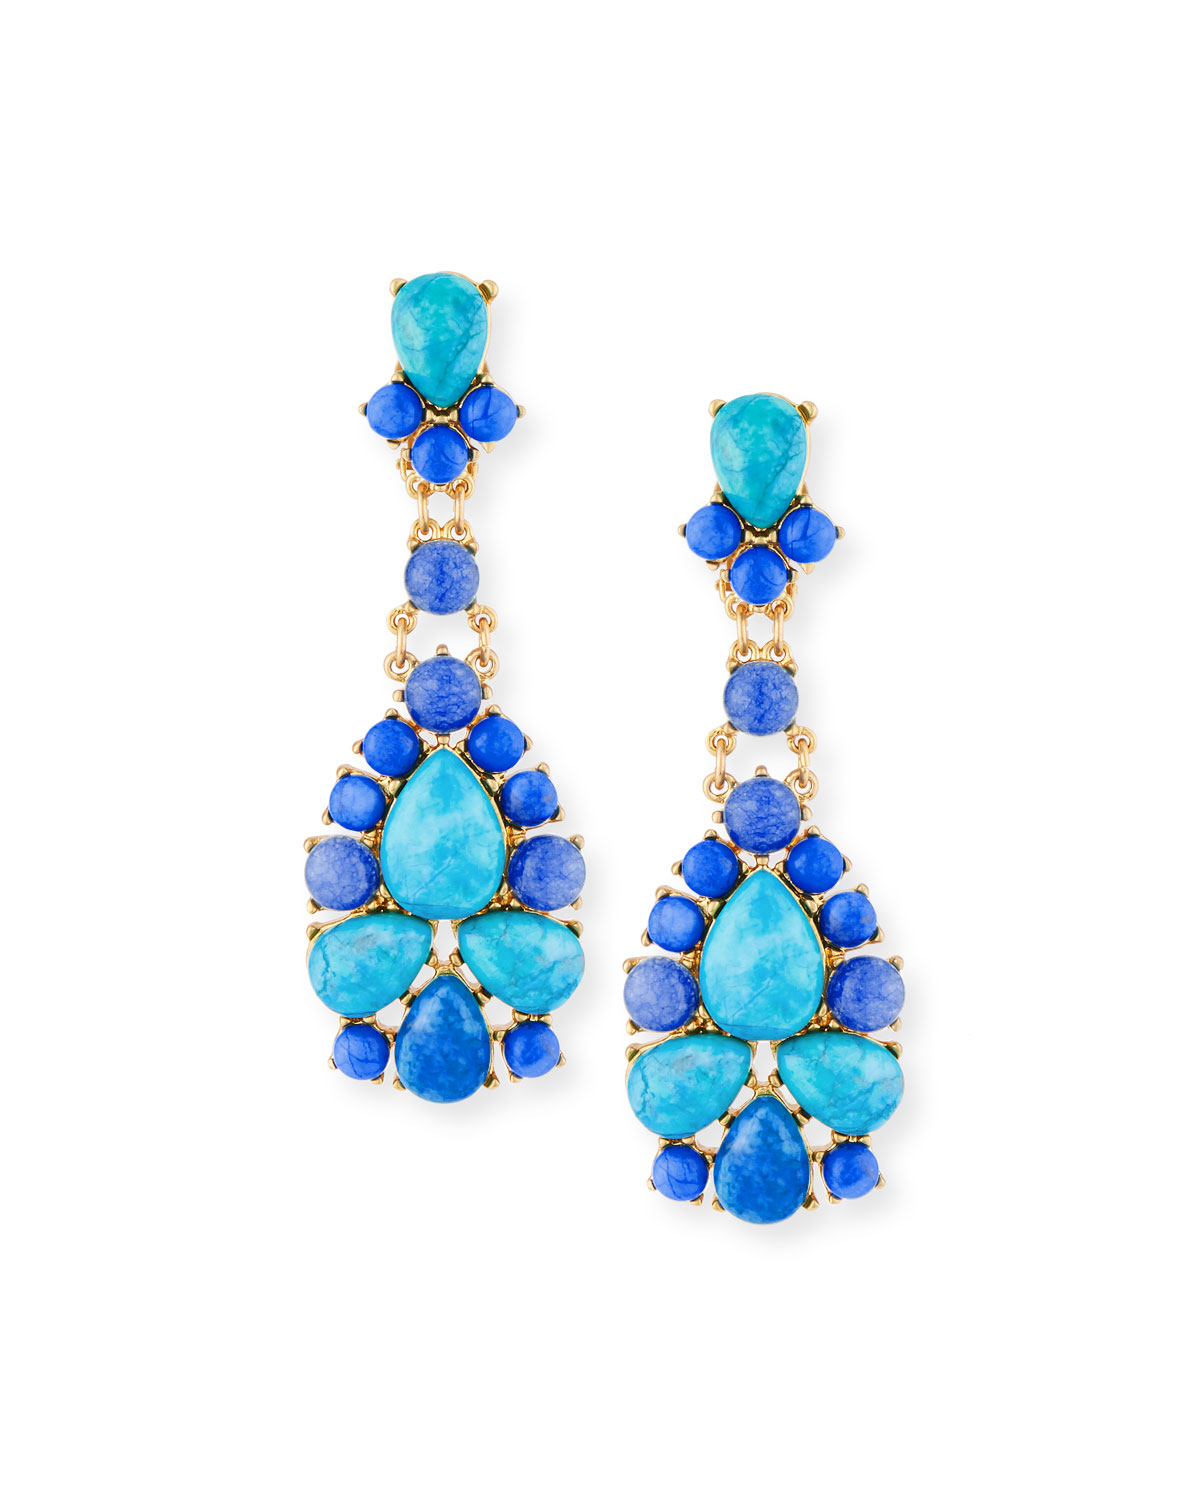 Turquoise & Agate Statement Earrings